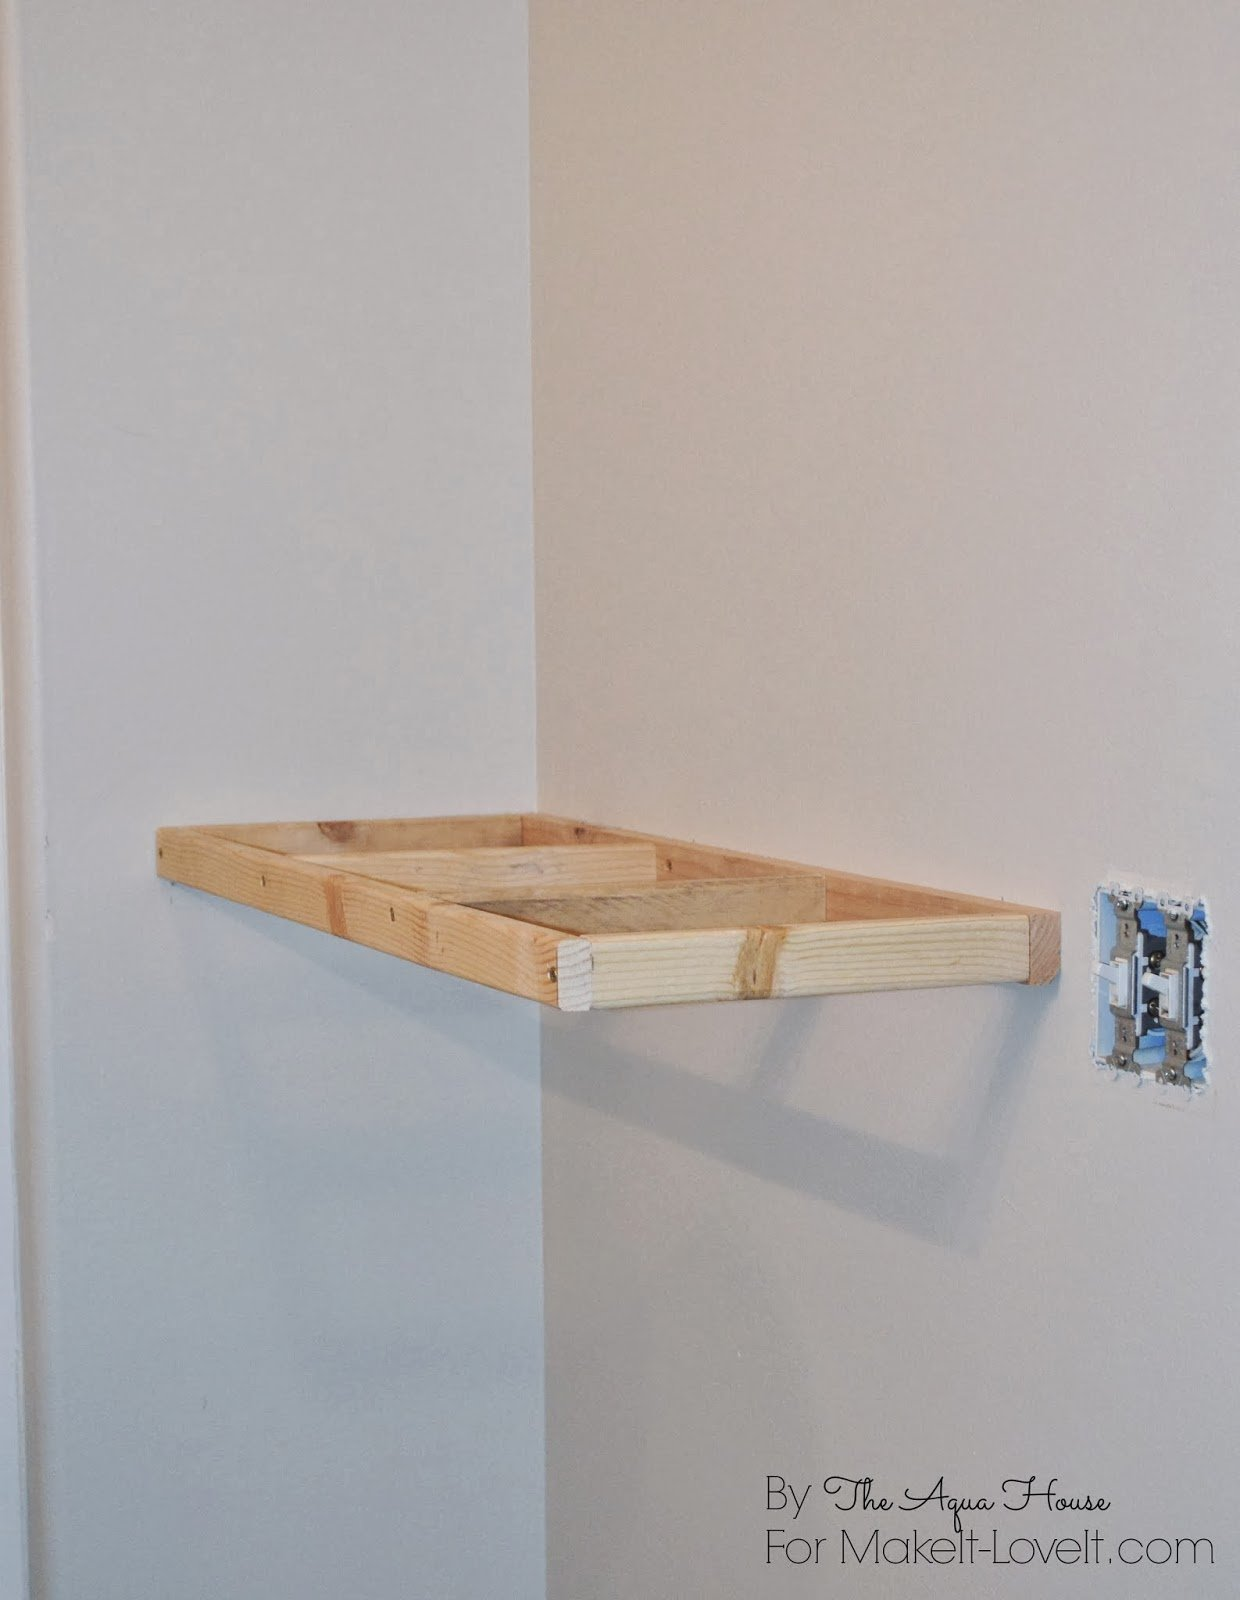 DIY floating shelves (makeit-loveit.com)